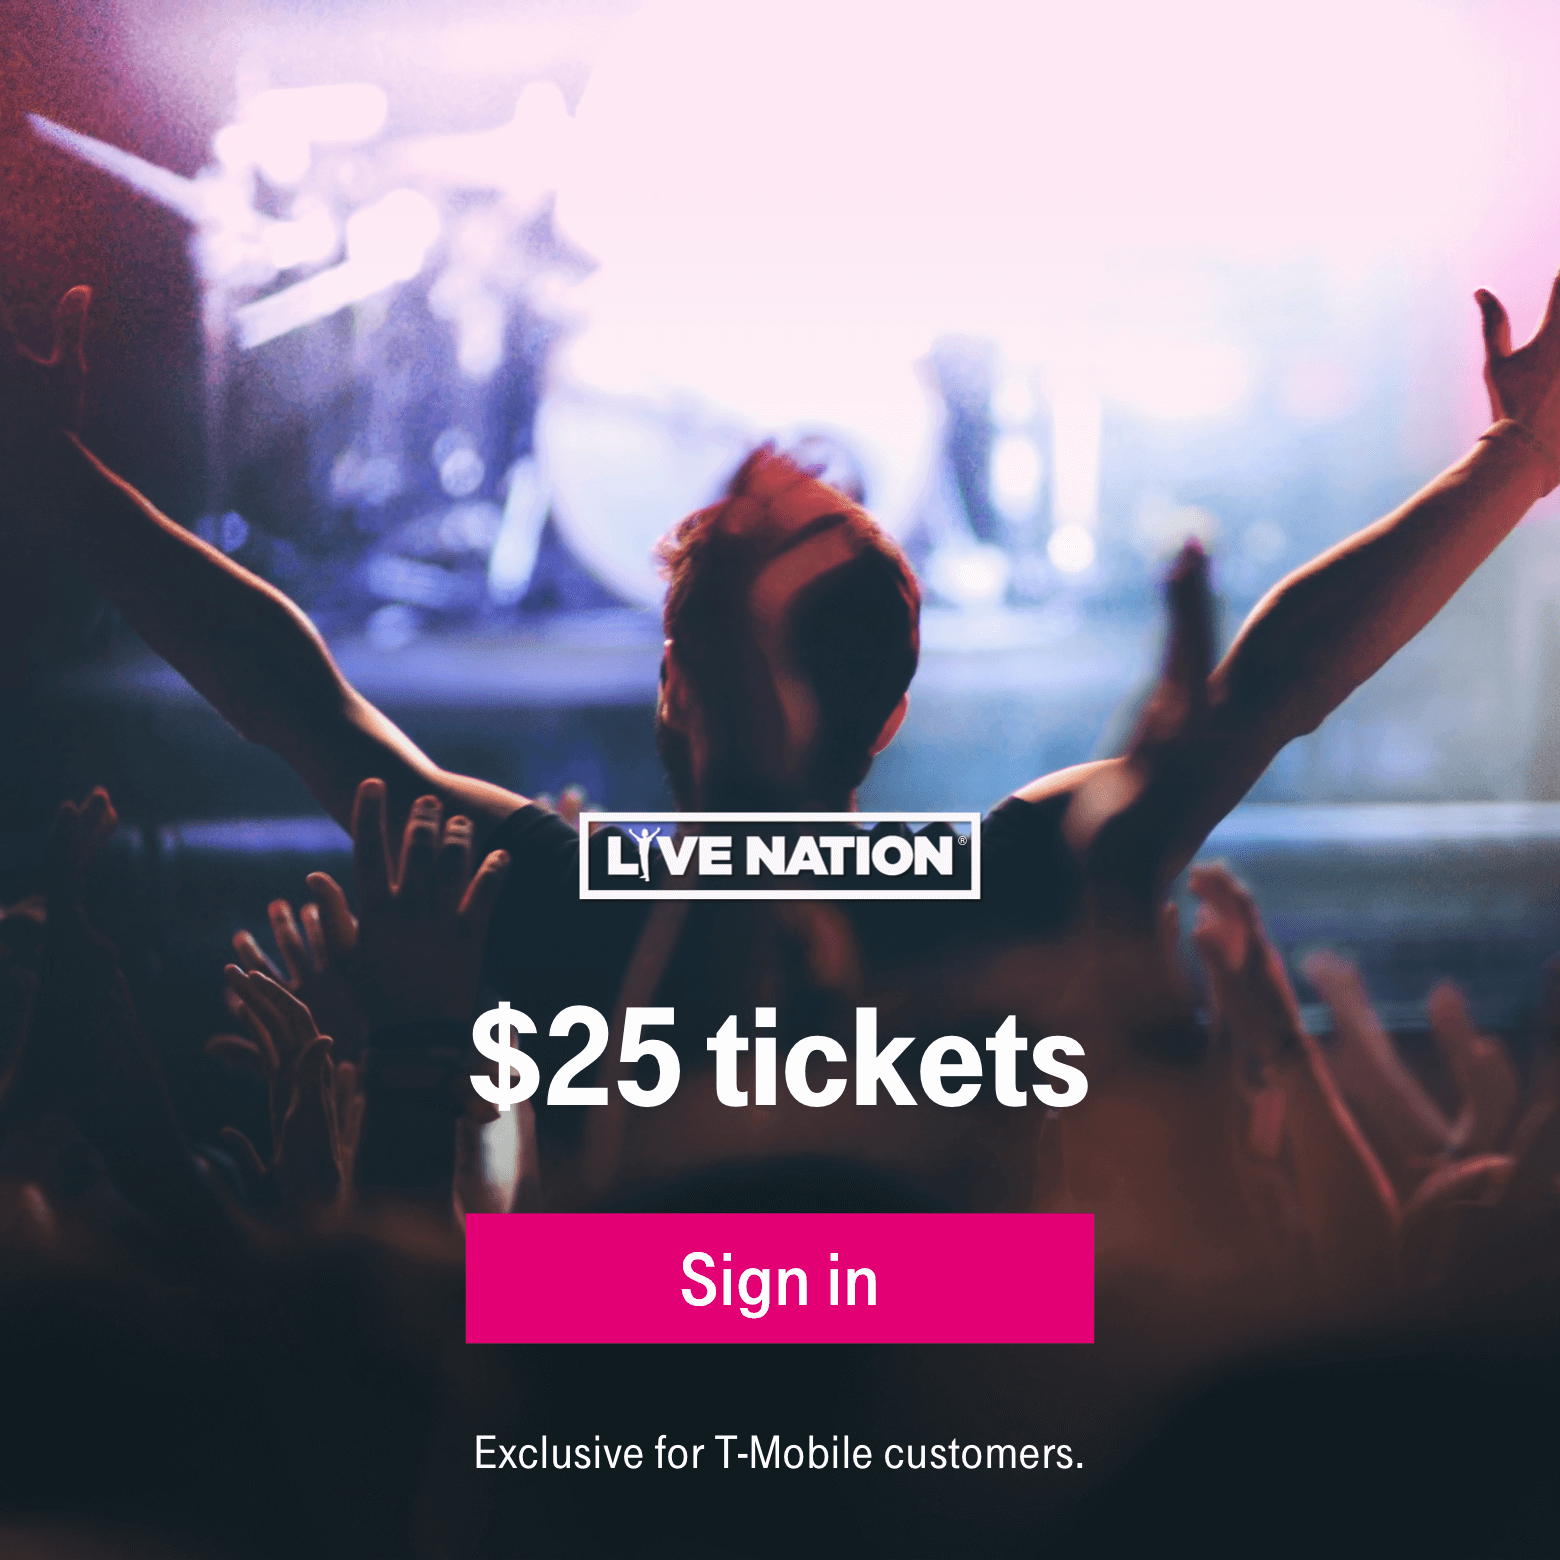 Live Nation. $25 tickets. Sign in. Exclusive for T-Mobile customers.